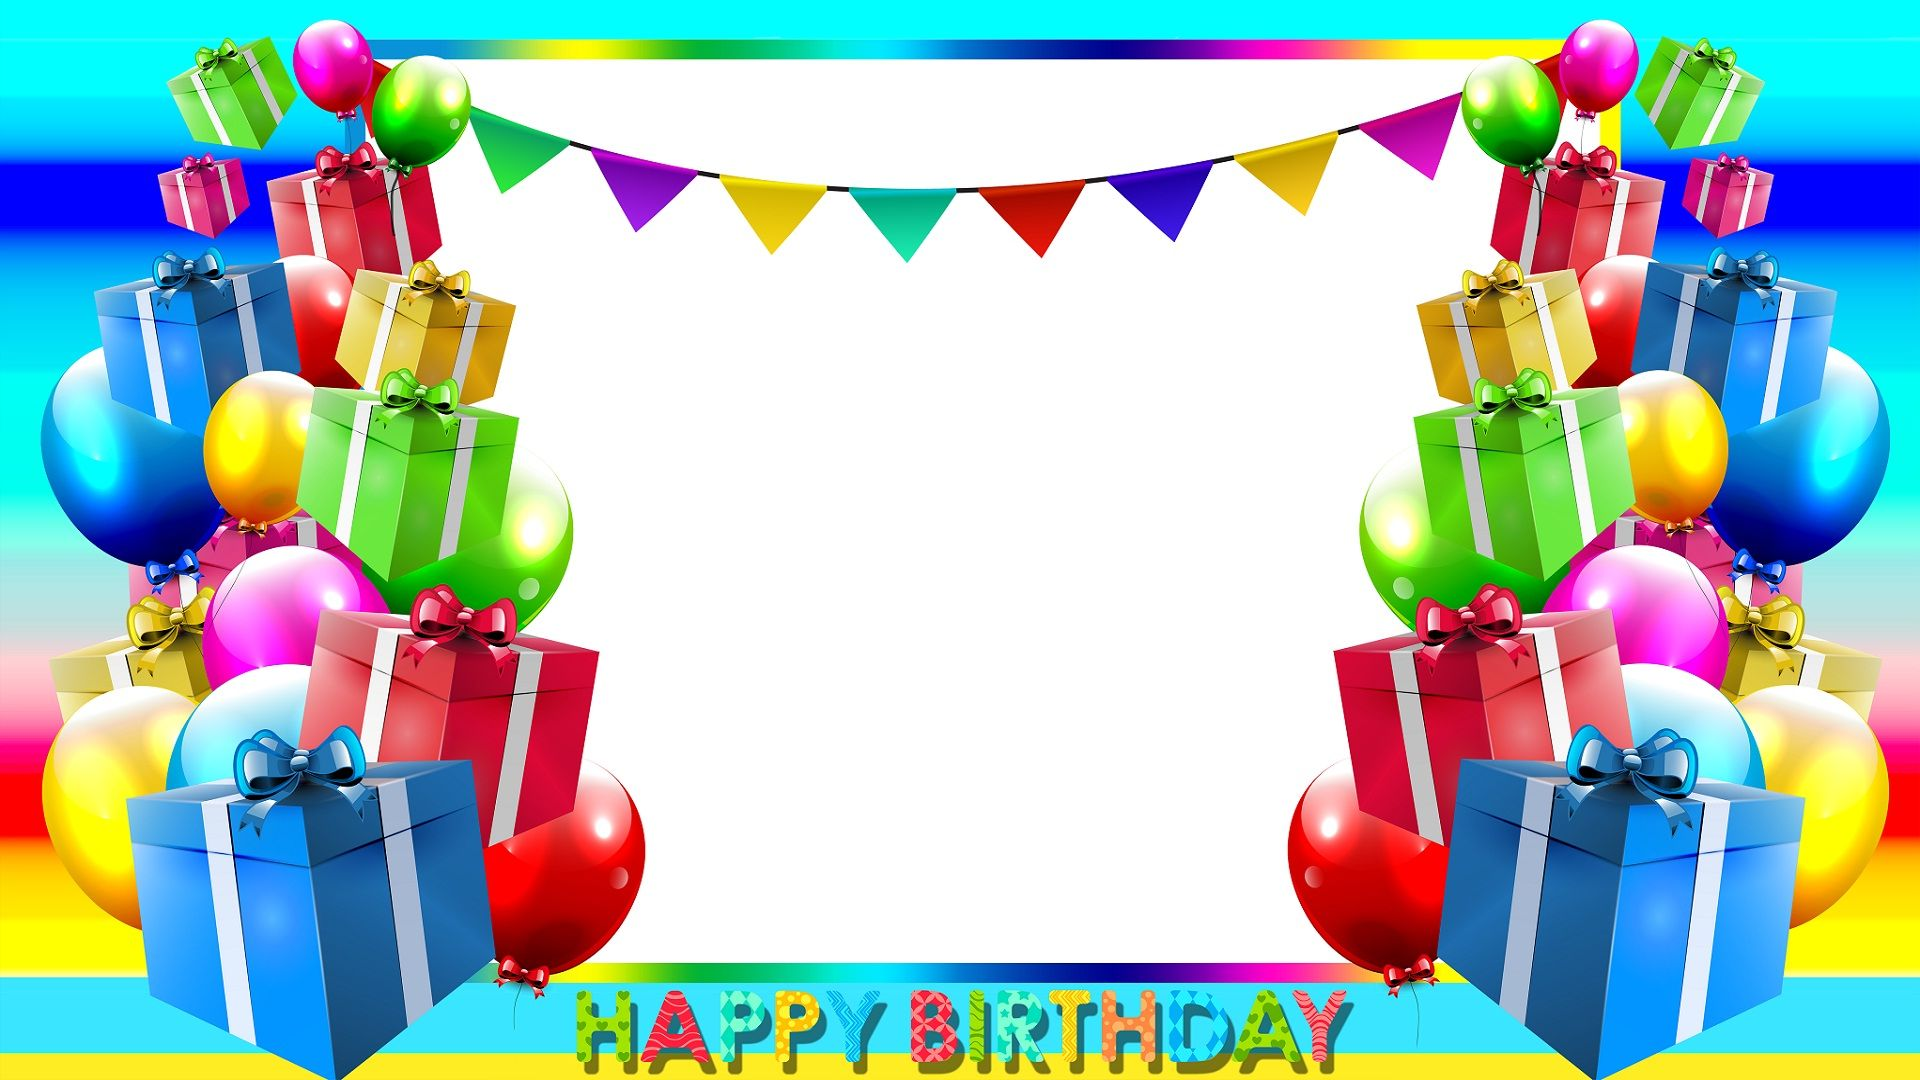 Image result for birthday wish frame png | Party and decoration ...